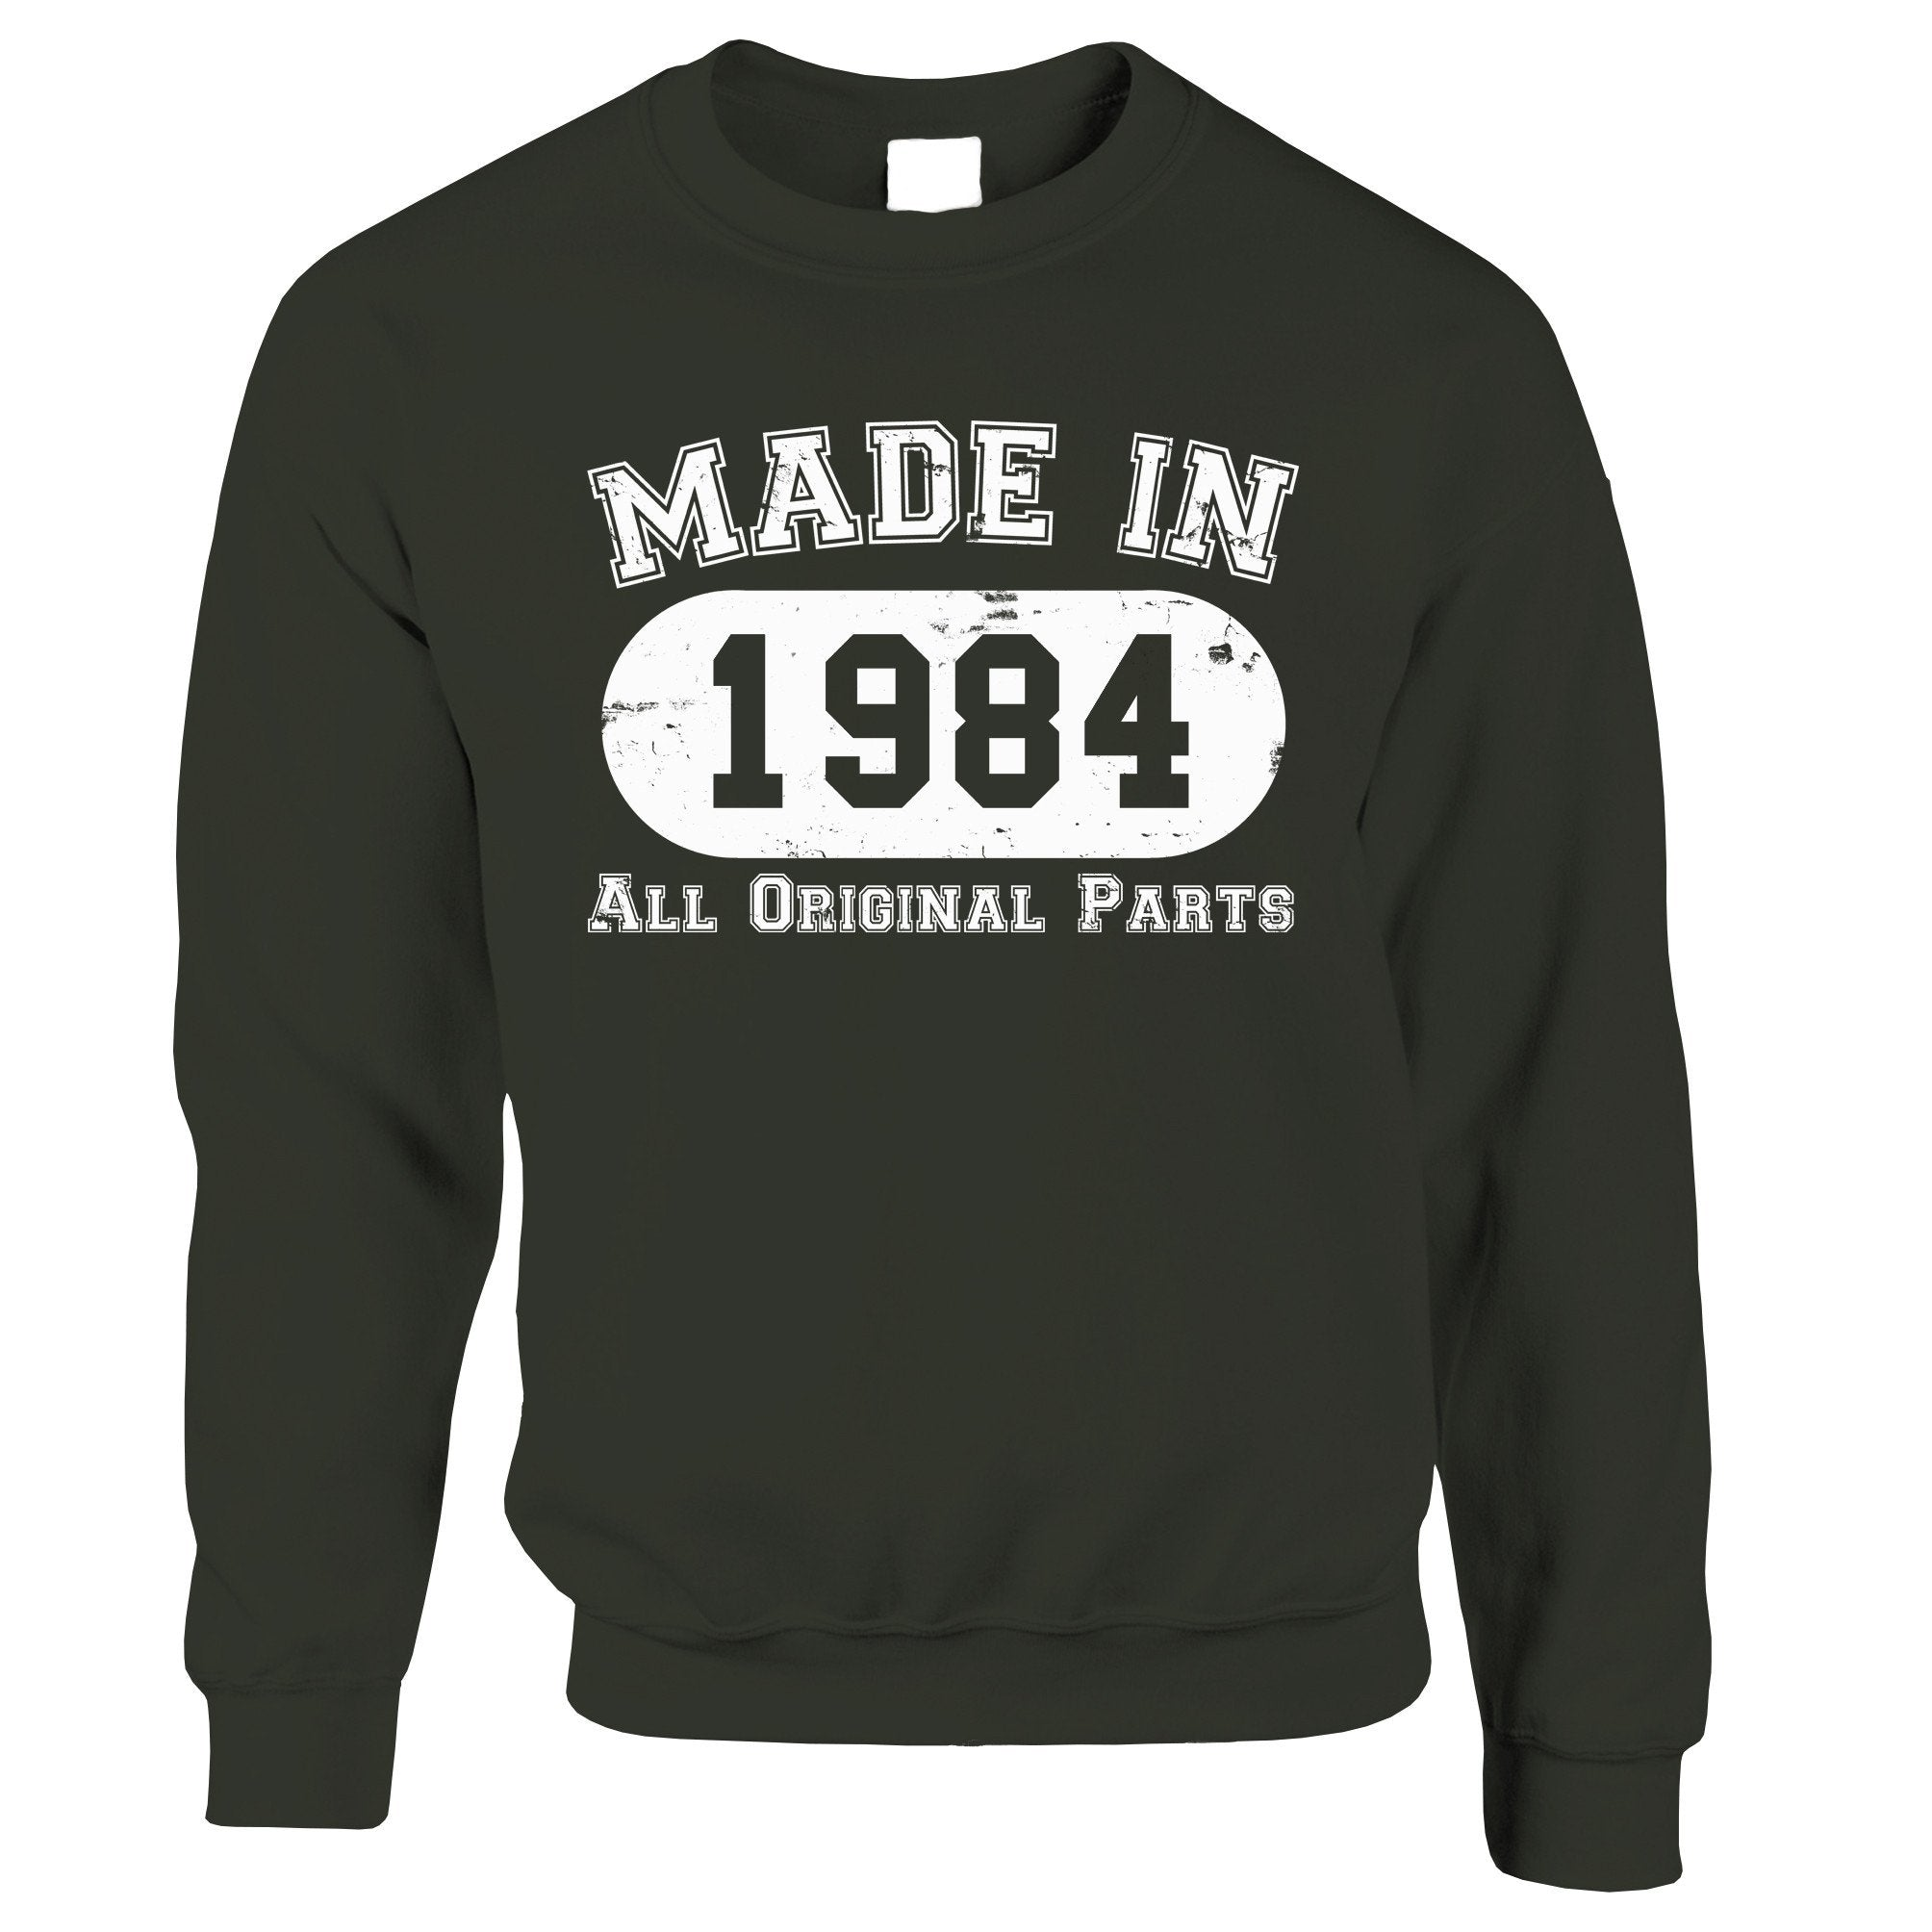 Made in 1984 All Original Parts Sweatshirt Jumper [Distressed]